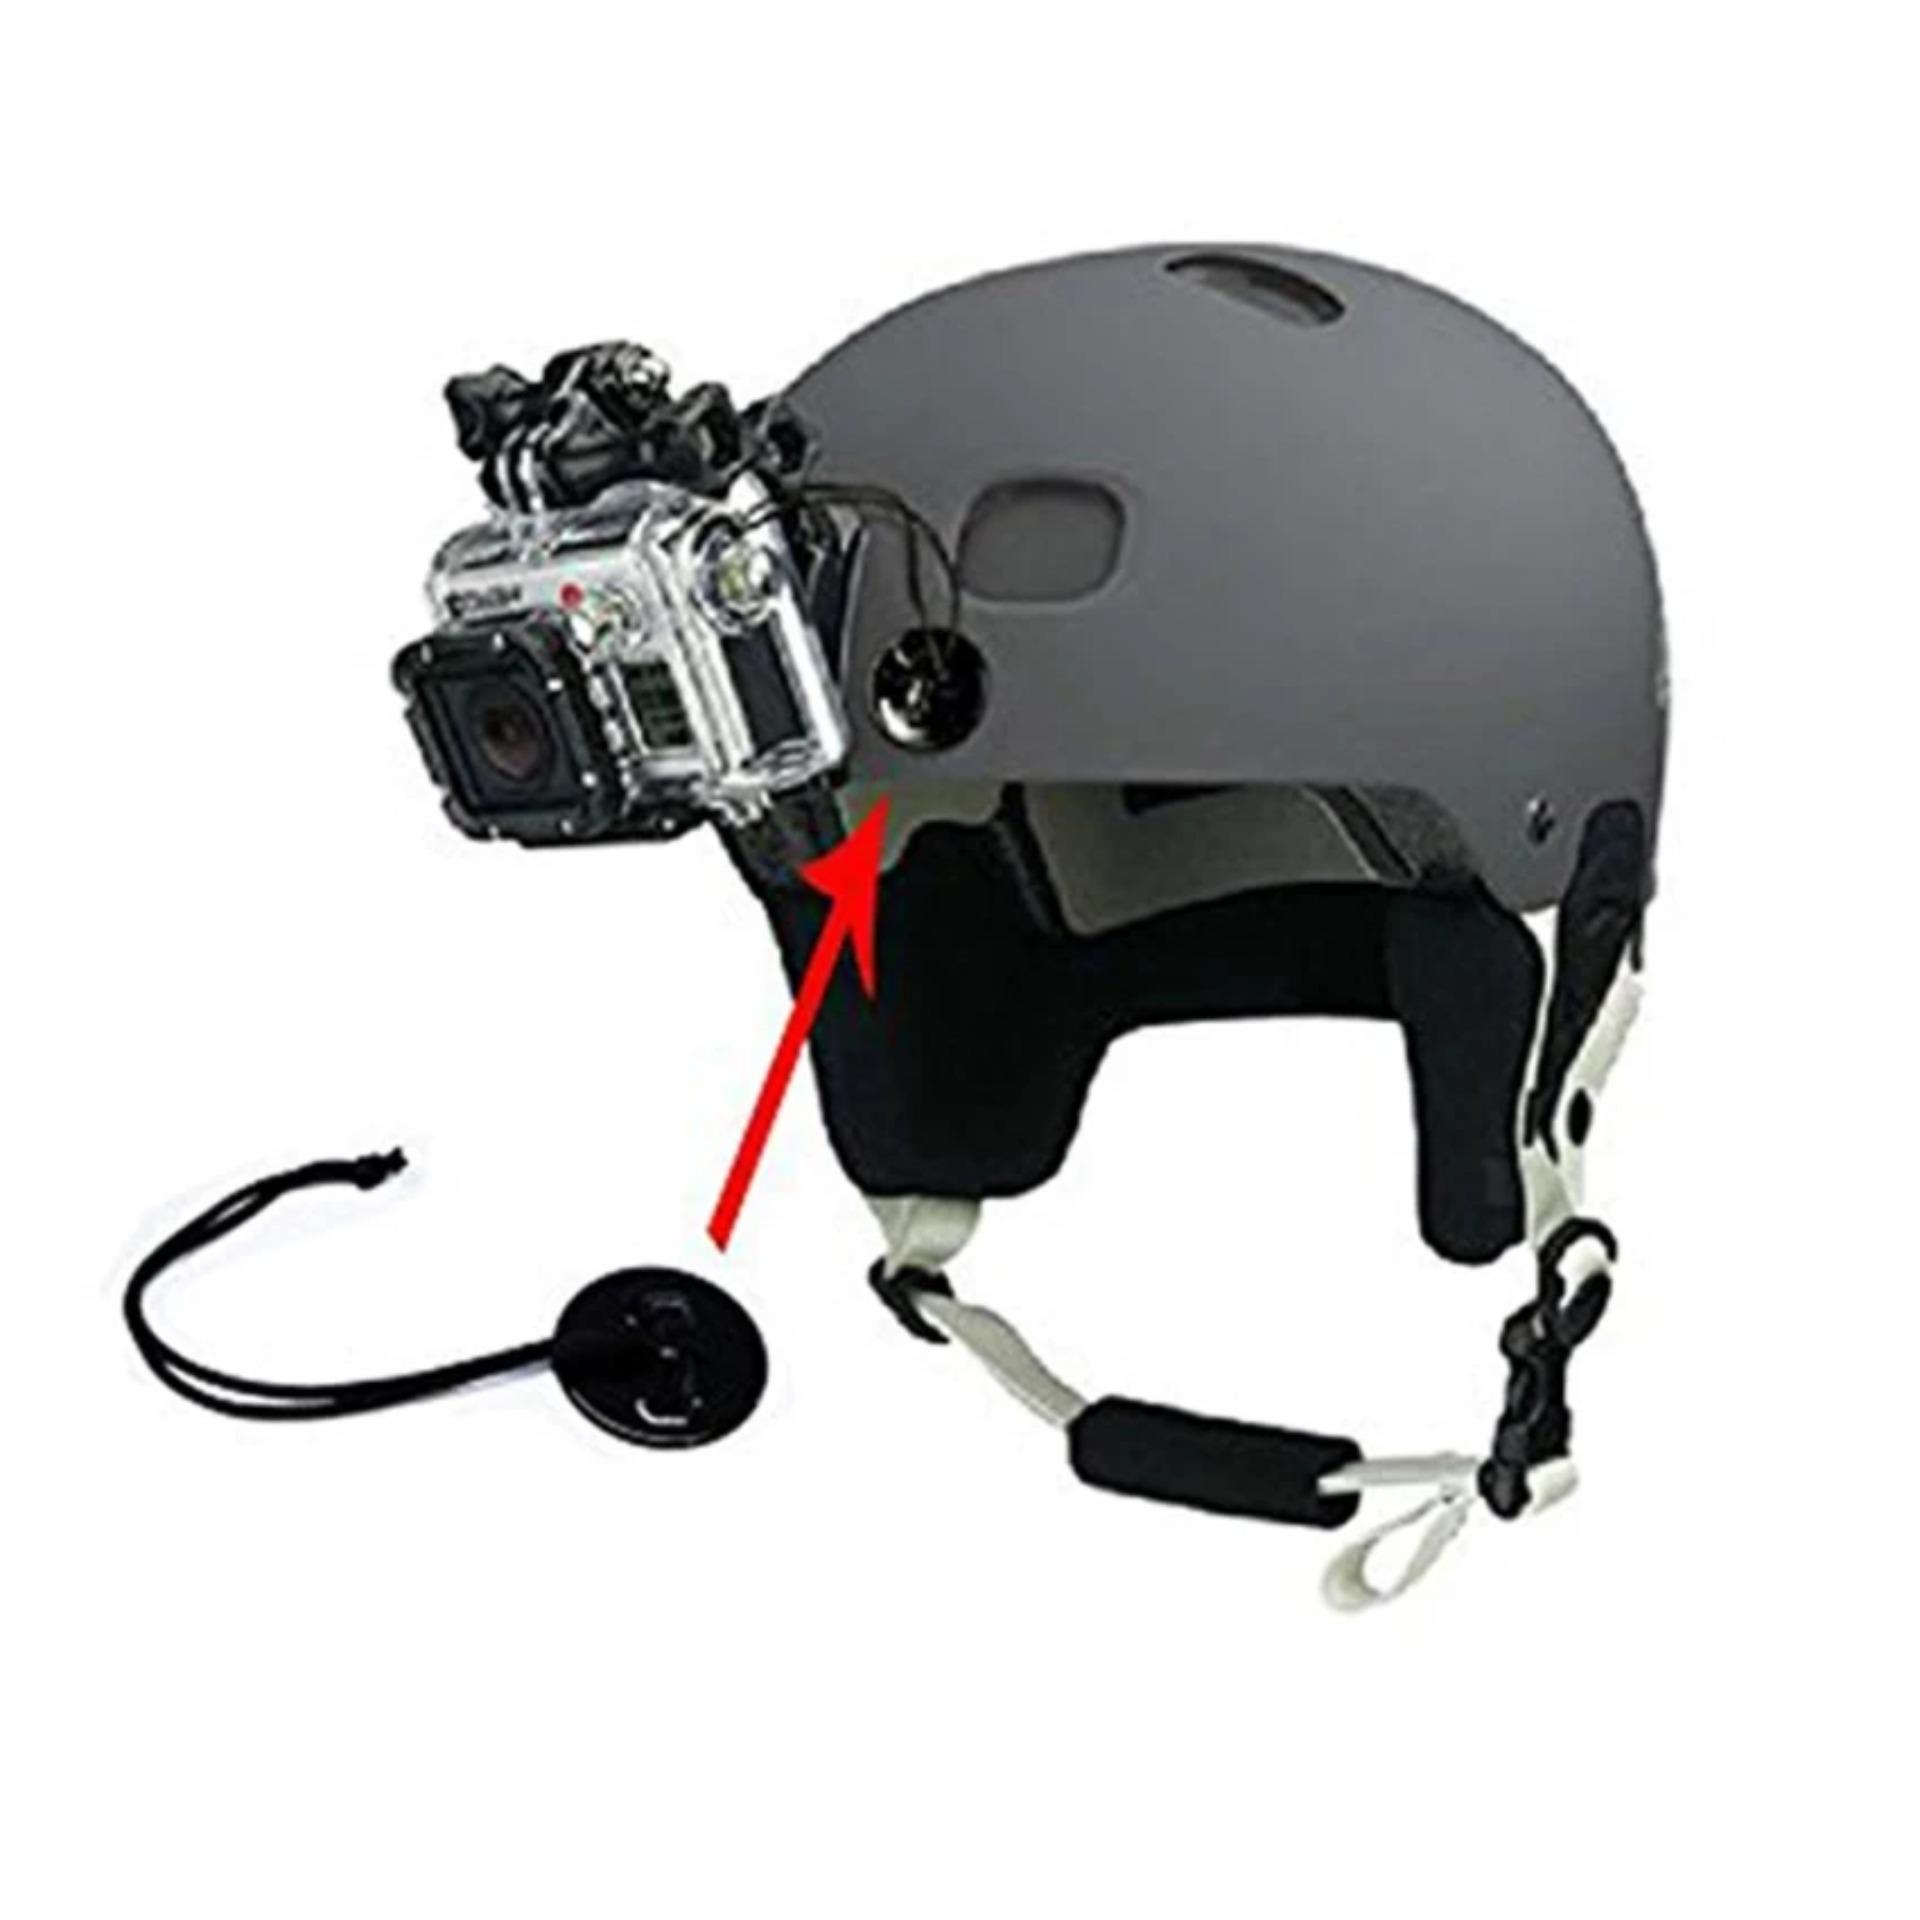 Gopro Tethers Helmet Anti Lost Cable Adapater W 3m Tape For Complete Set Bike Brica B Pro Ampamp Xiaomi Yi Camera Source